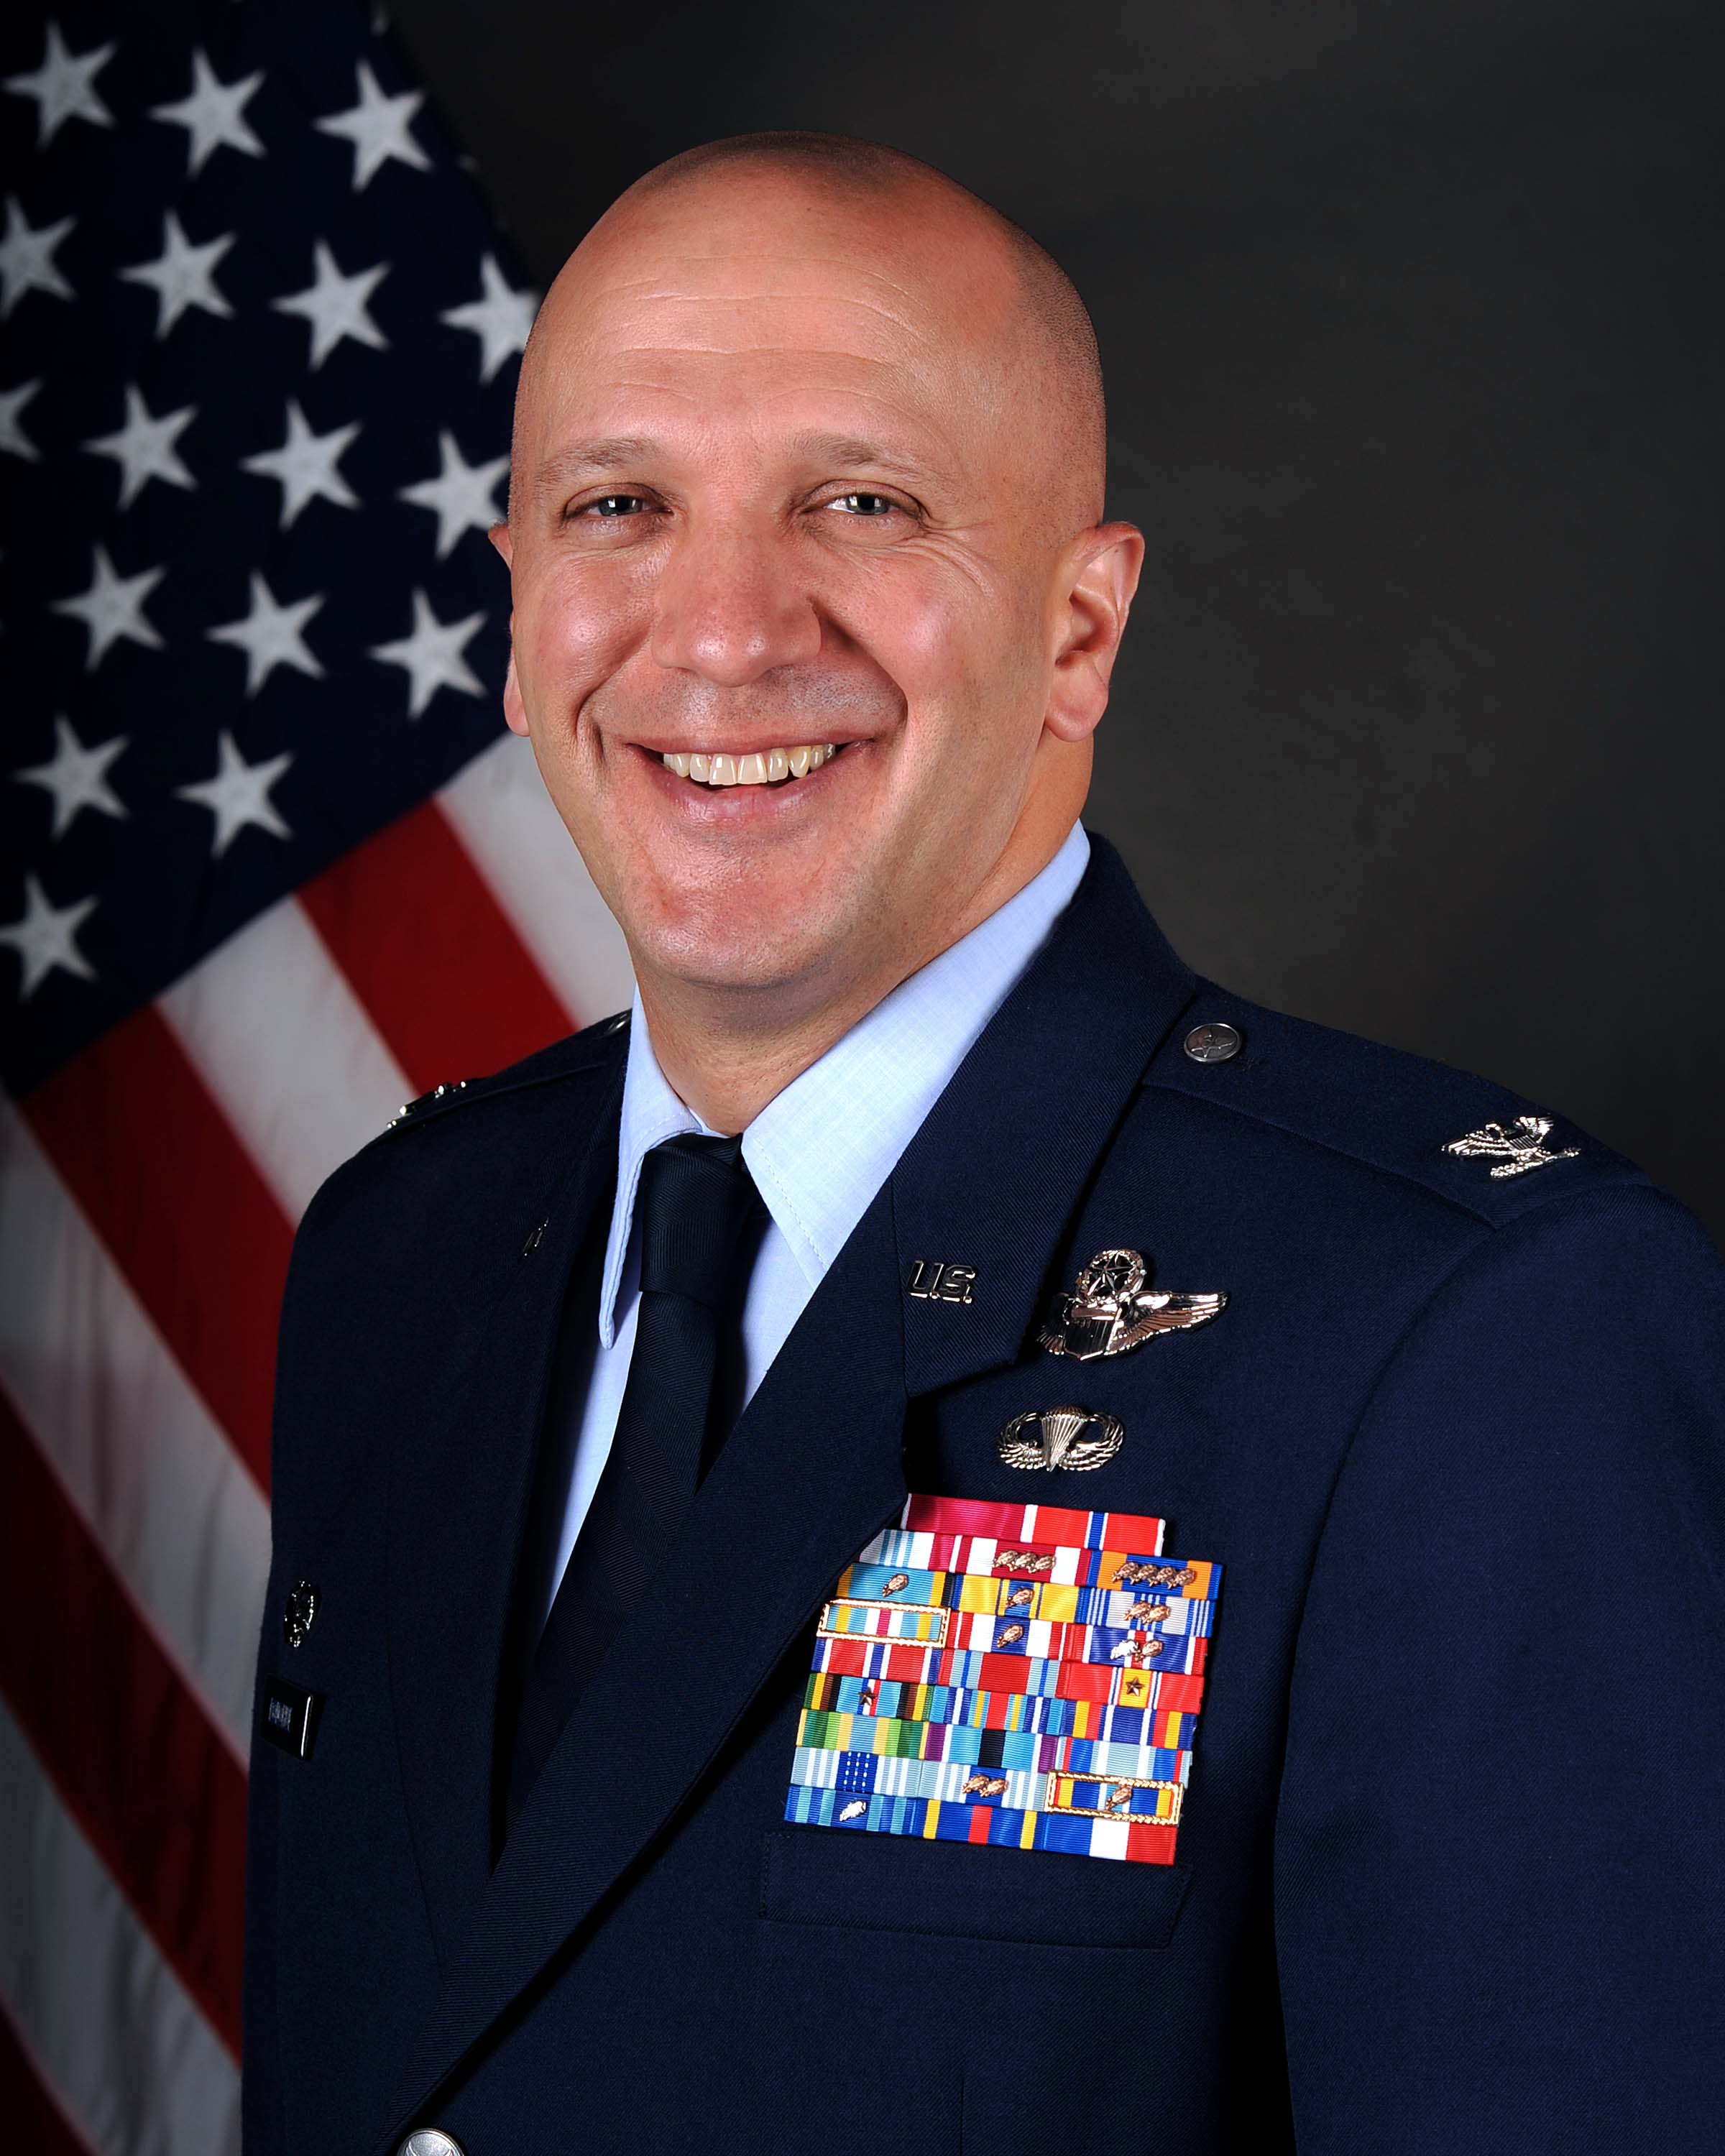 Bald white man in Blue Air Force Uniform in front of Red, white and Blue American flag.